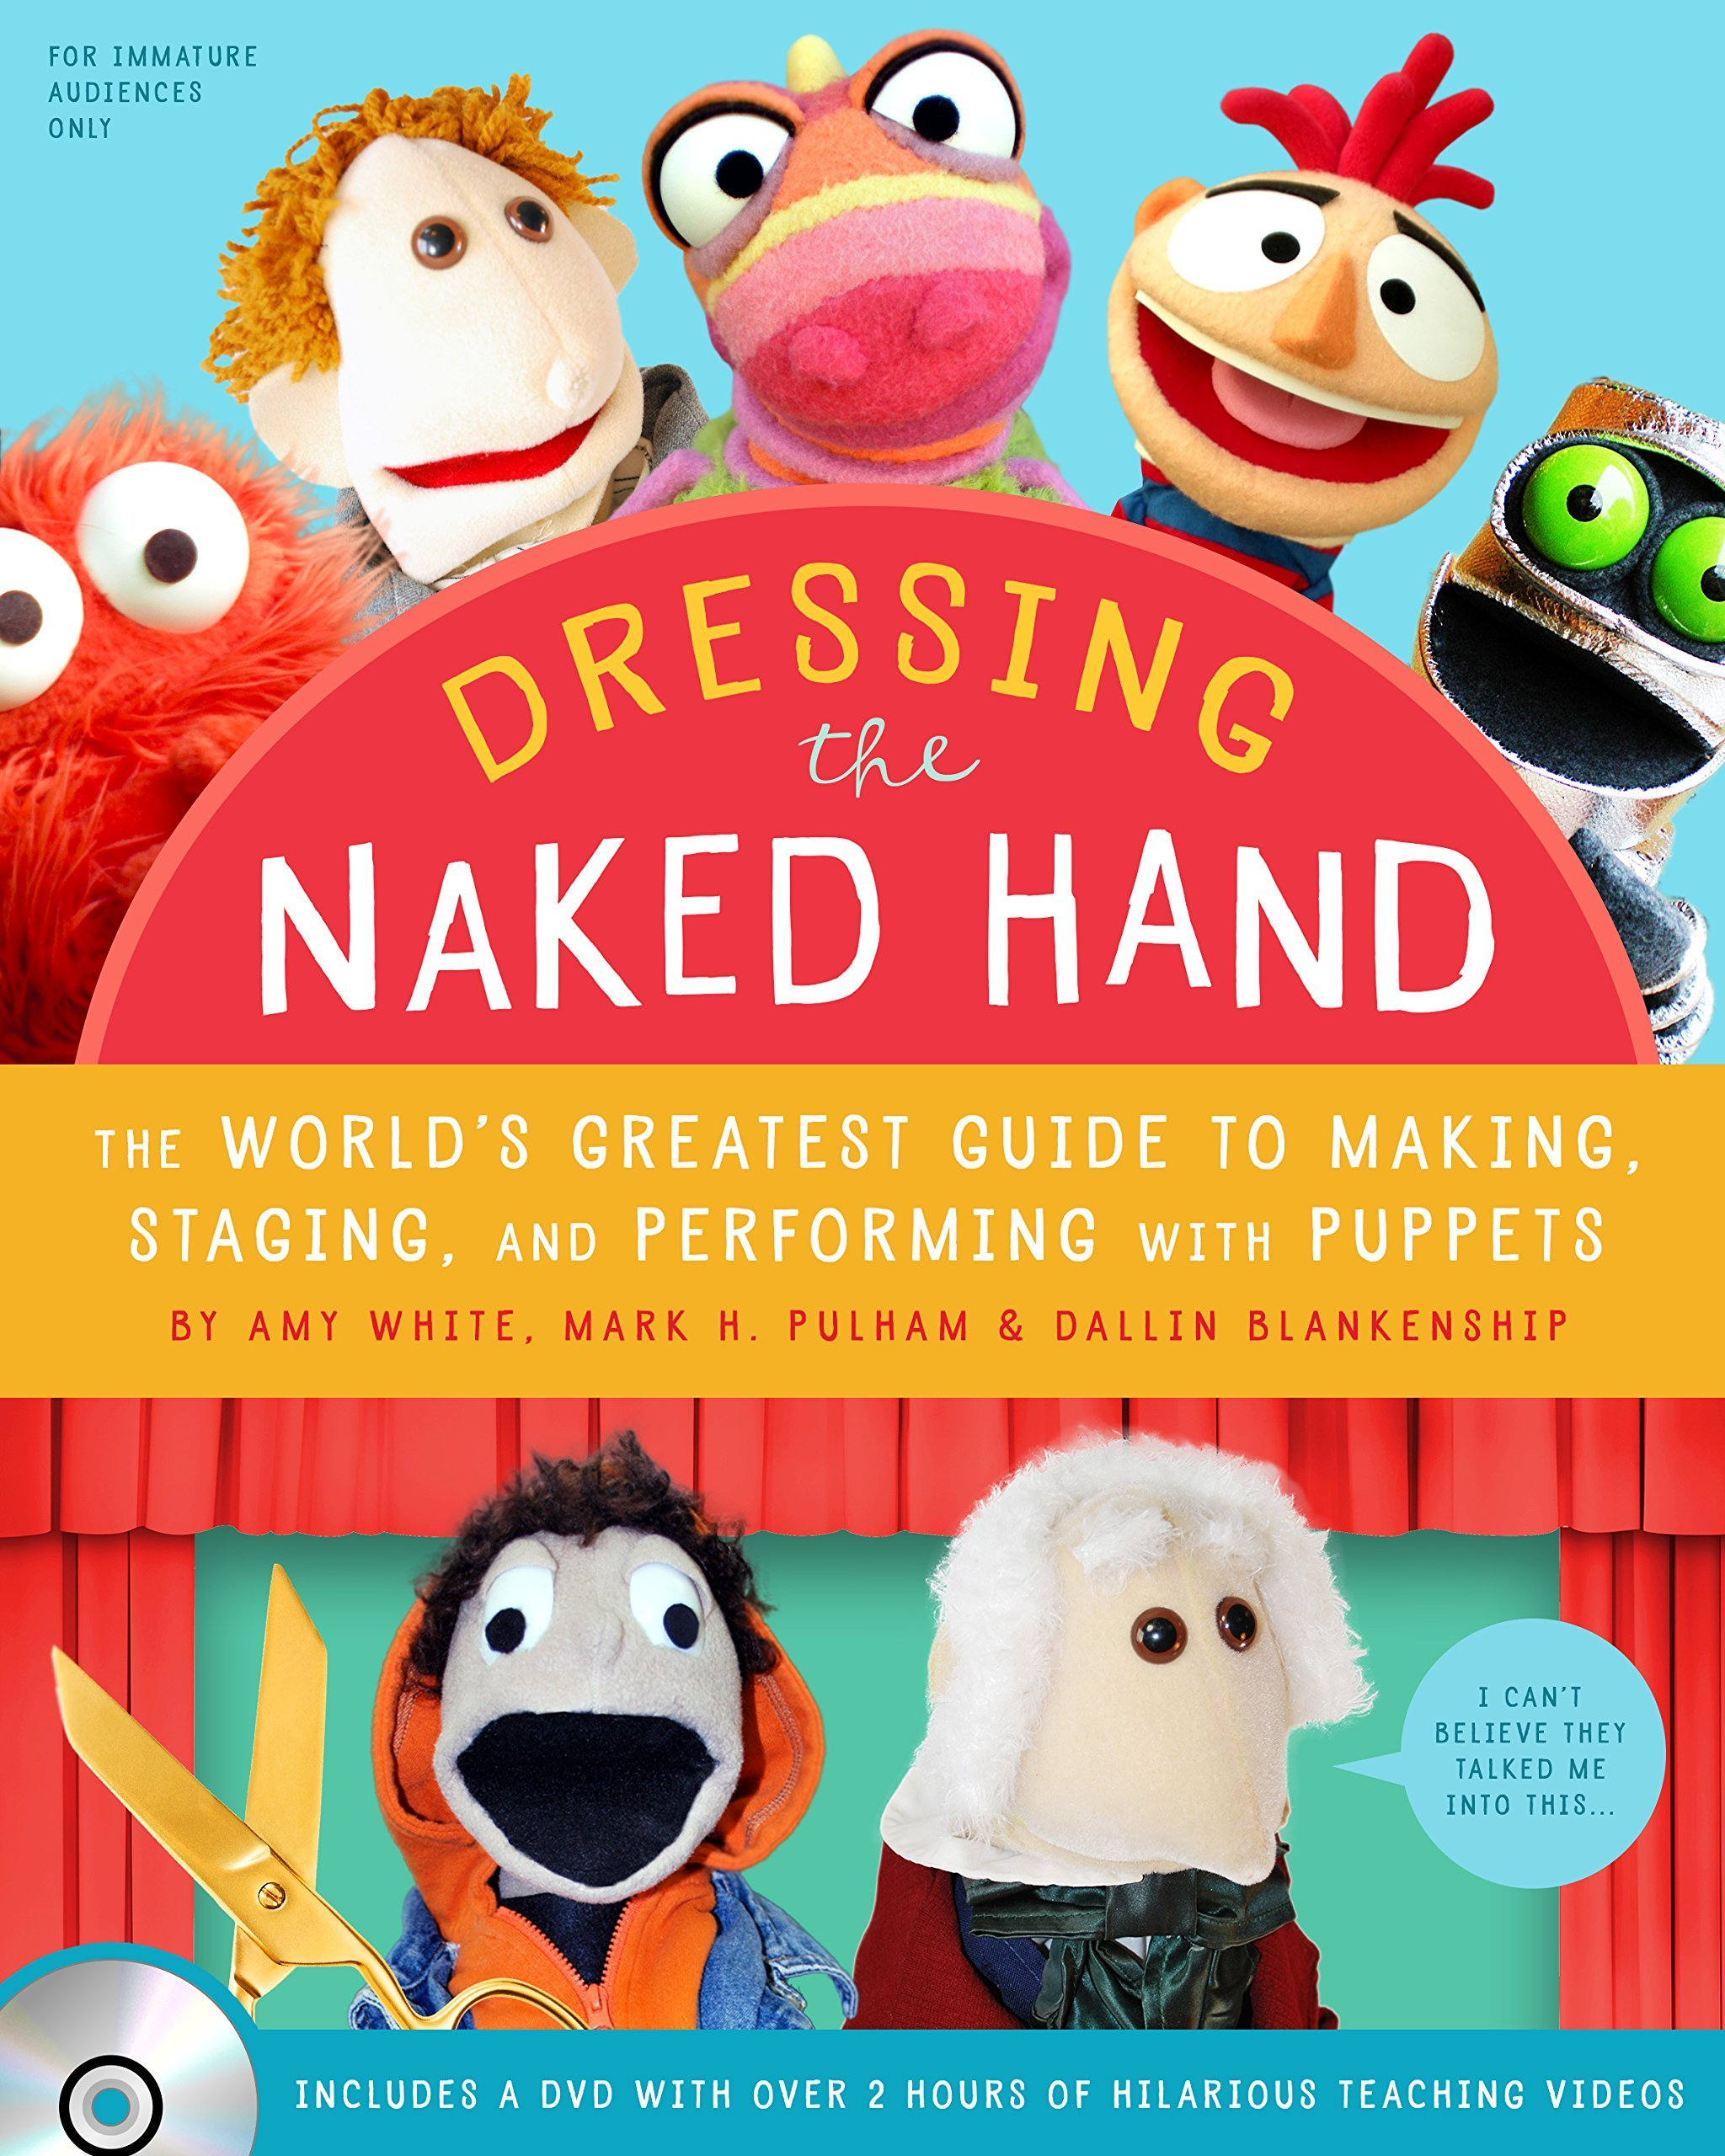 Dressing the Naked Hand: The World's Greatest Guide to Puppets, Puppetry, and Puppeteering